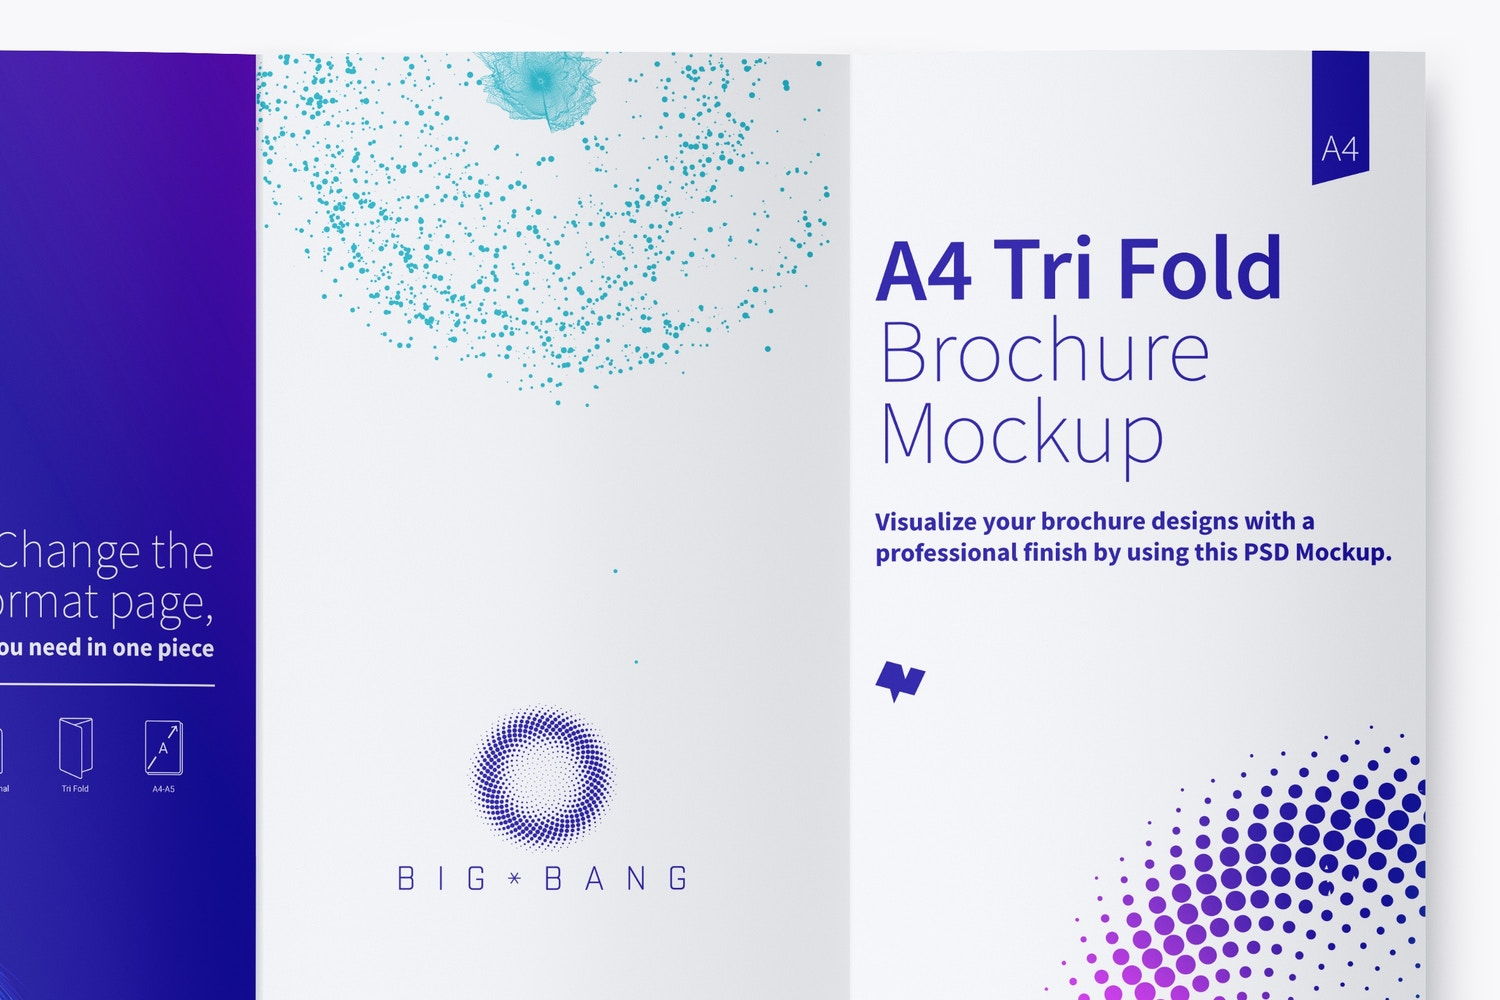 A4 Trifold Brochure Mockup 03 (4) by Original Mockups on Original Mockups